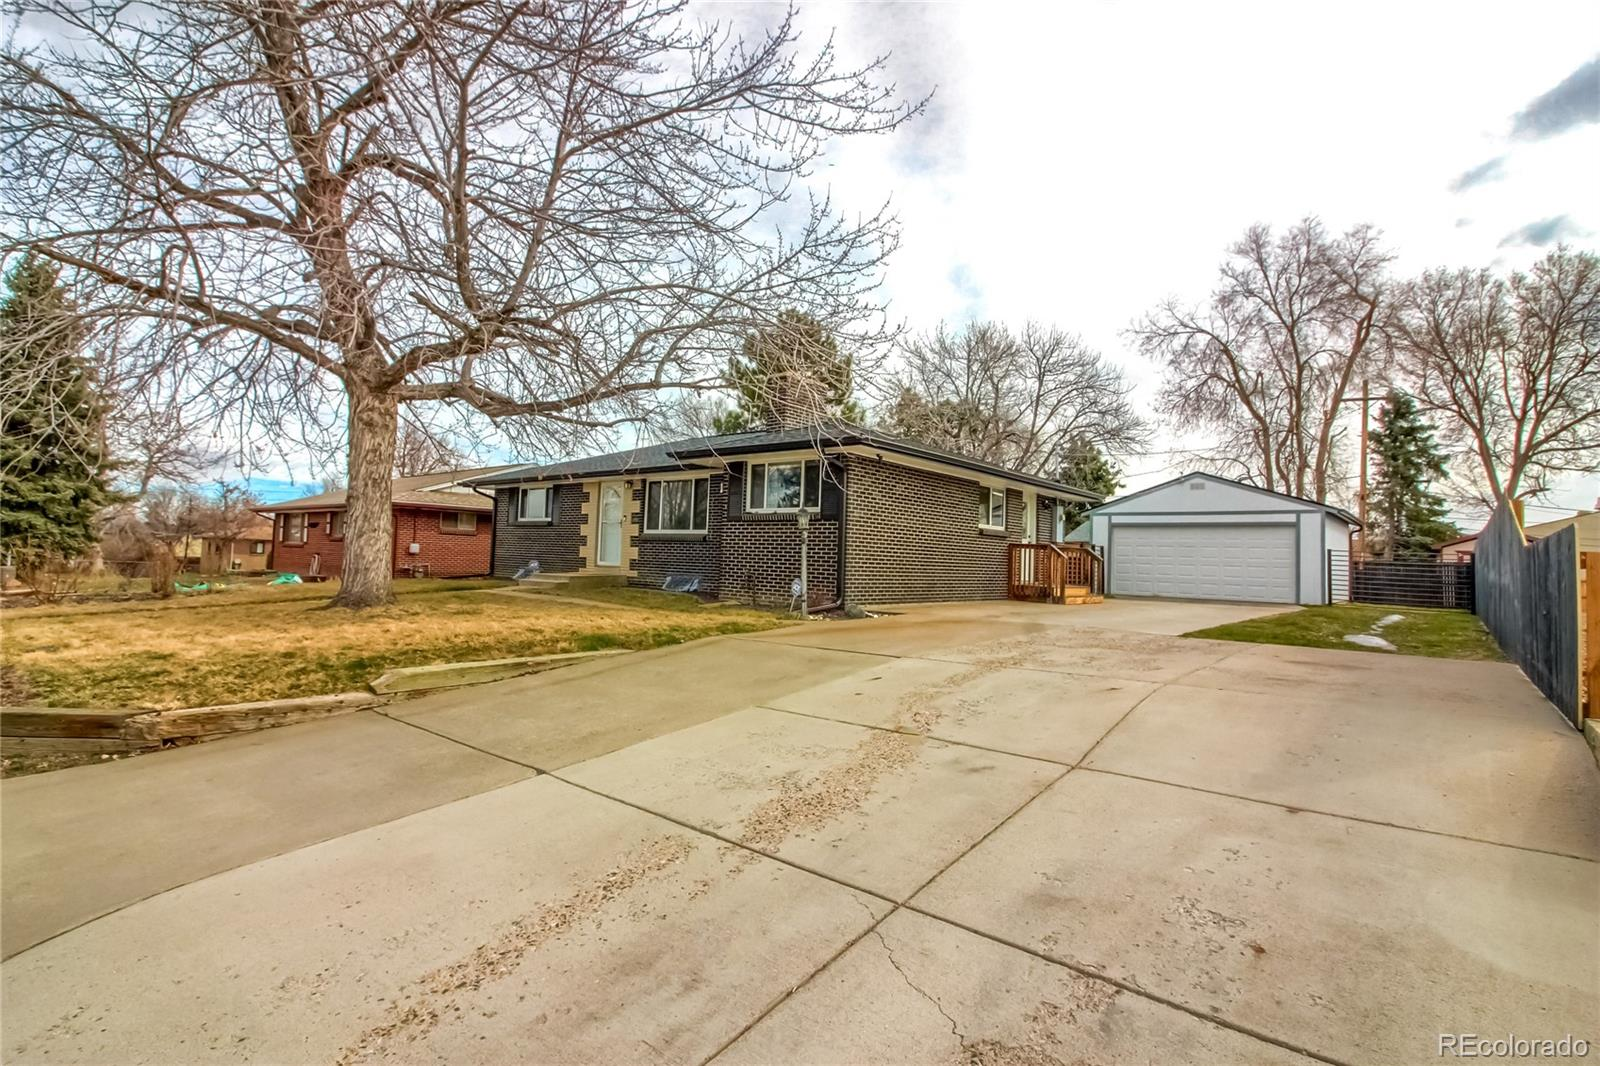 MLS# 5923715 - 2 - 1830 Lee Street, Lakewood, CO 80215